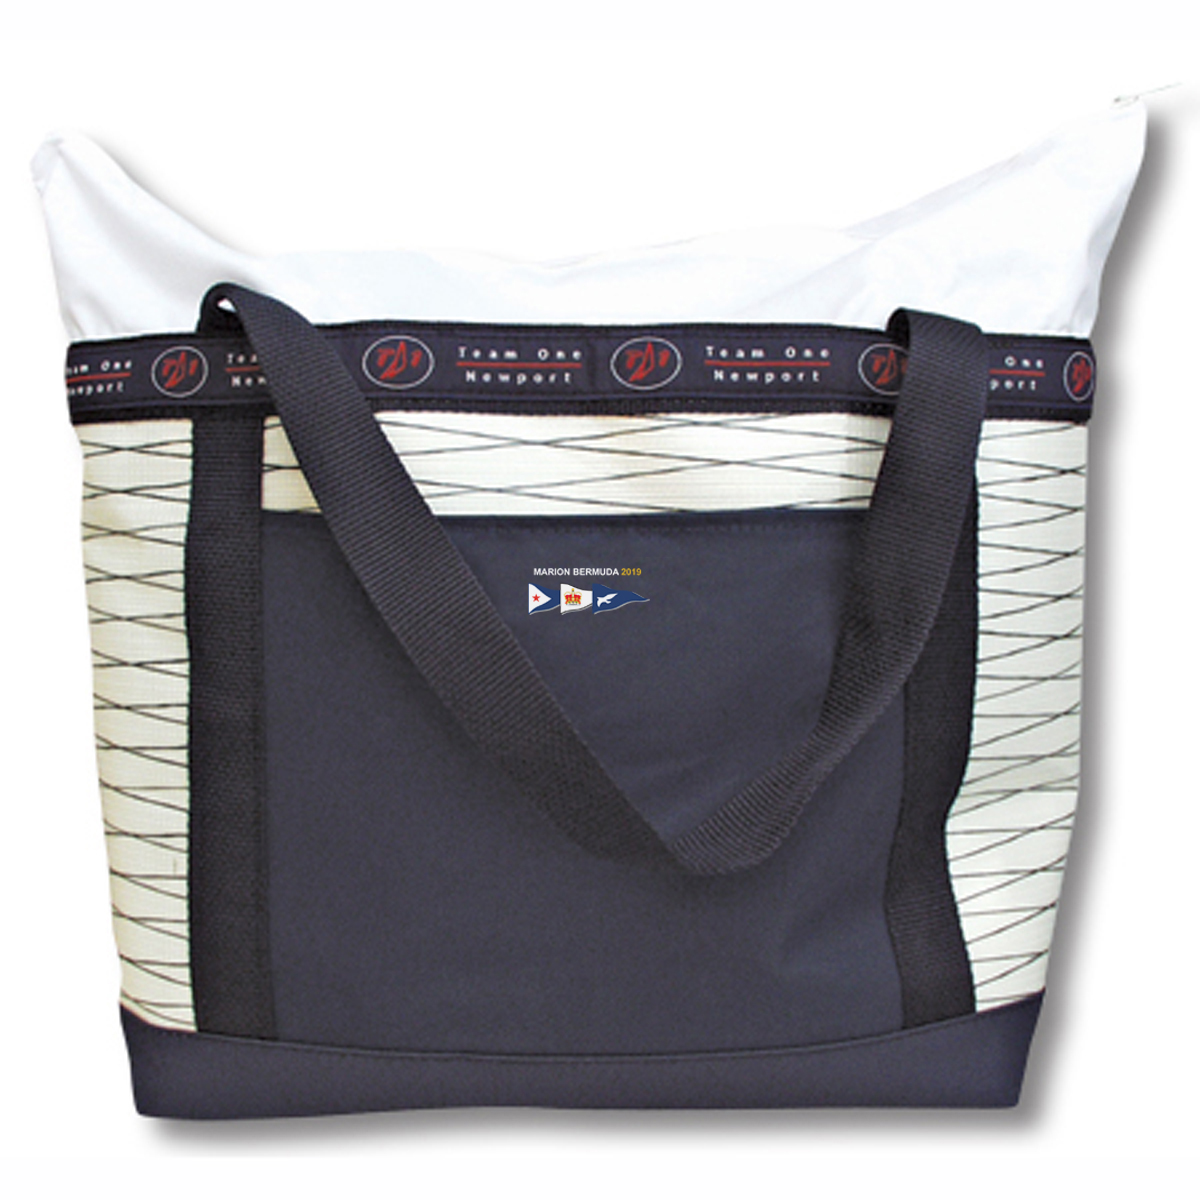 MBR 19 SAIL CLOTH ZIPPERED TOTE